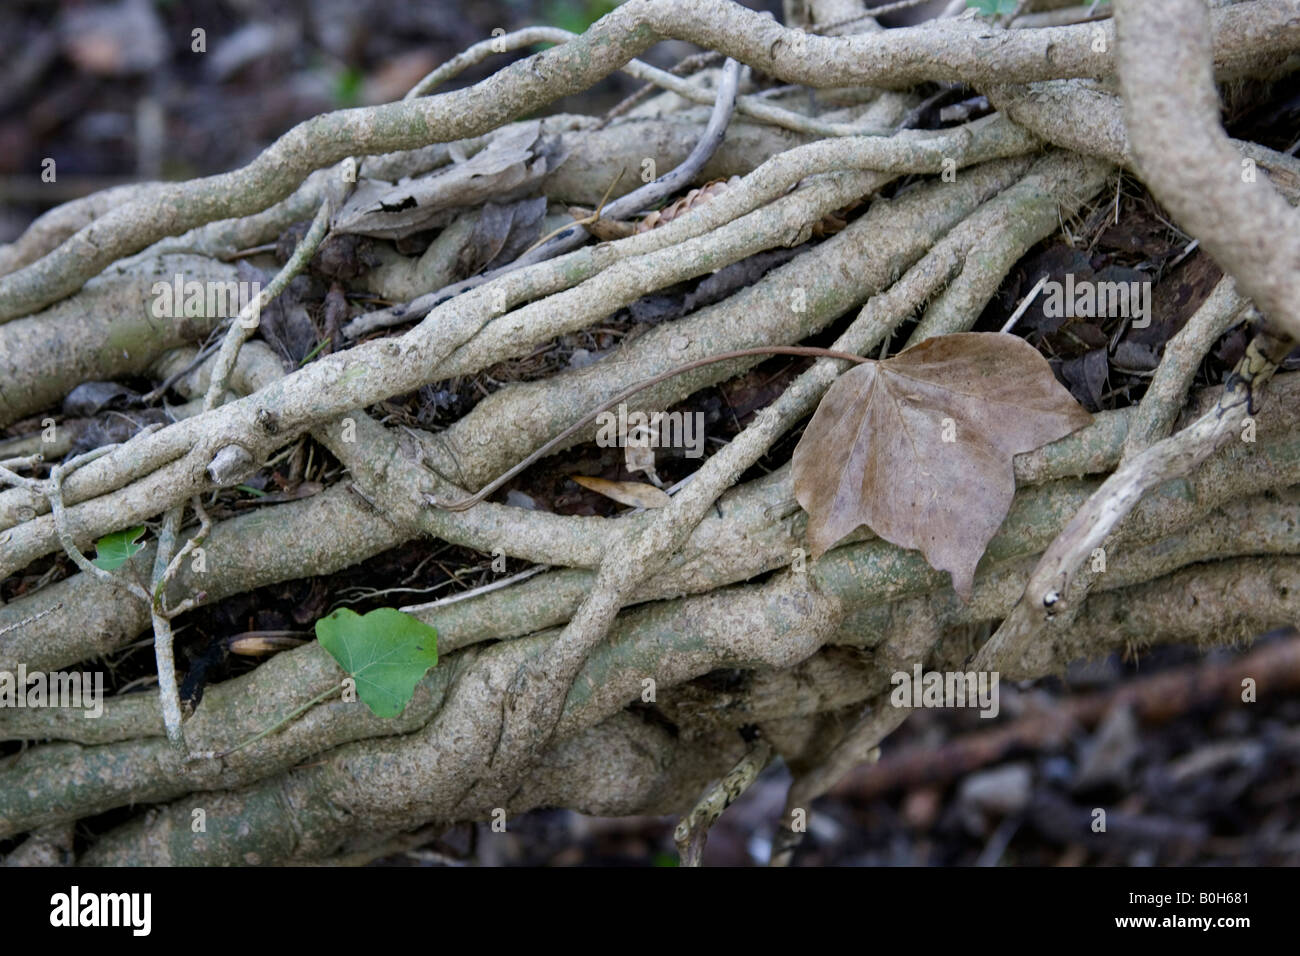 A fallen log entwined in ivy. Stock Photo